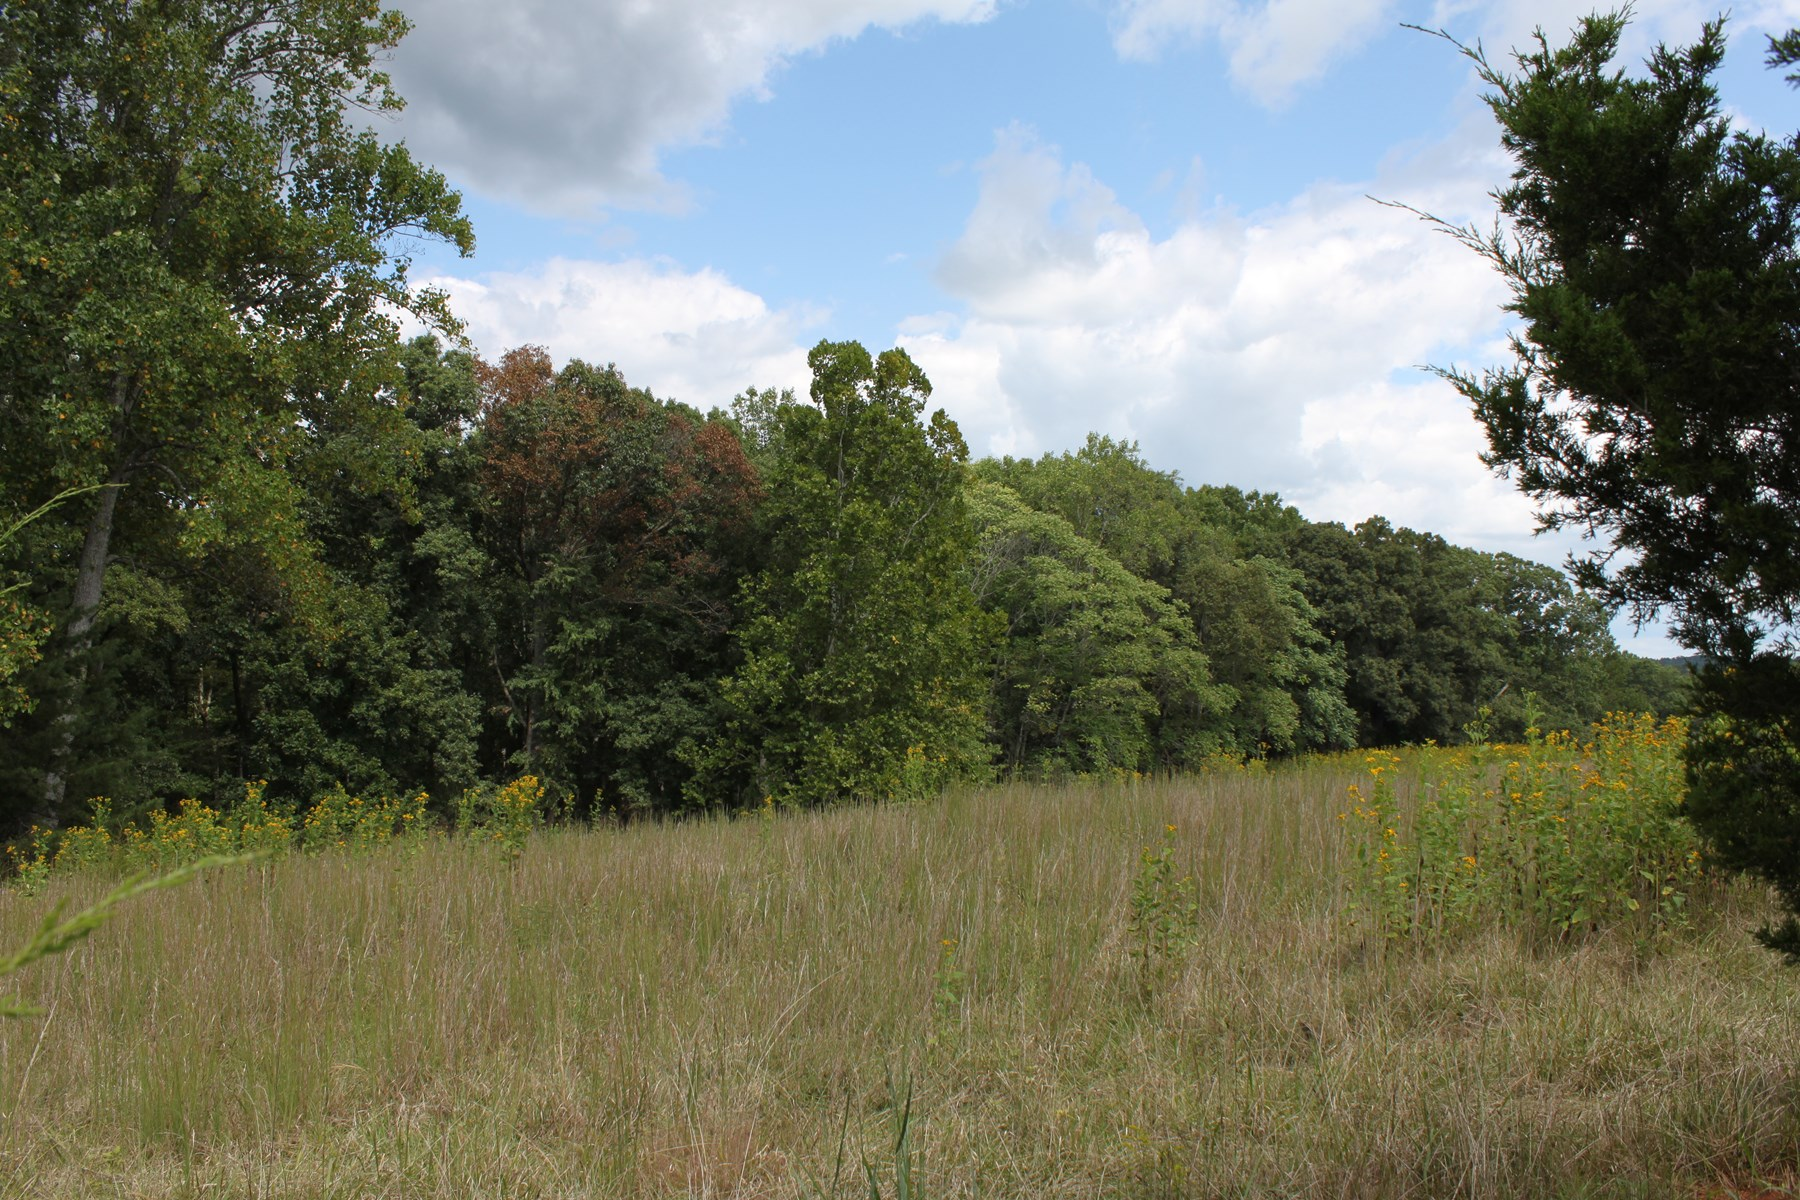 5 Acres UNRESTRICTED LAND IN VIRGINIA